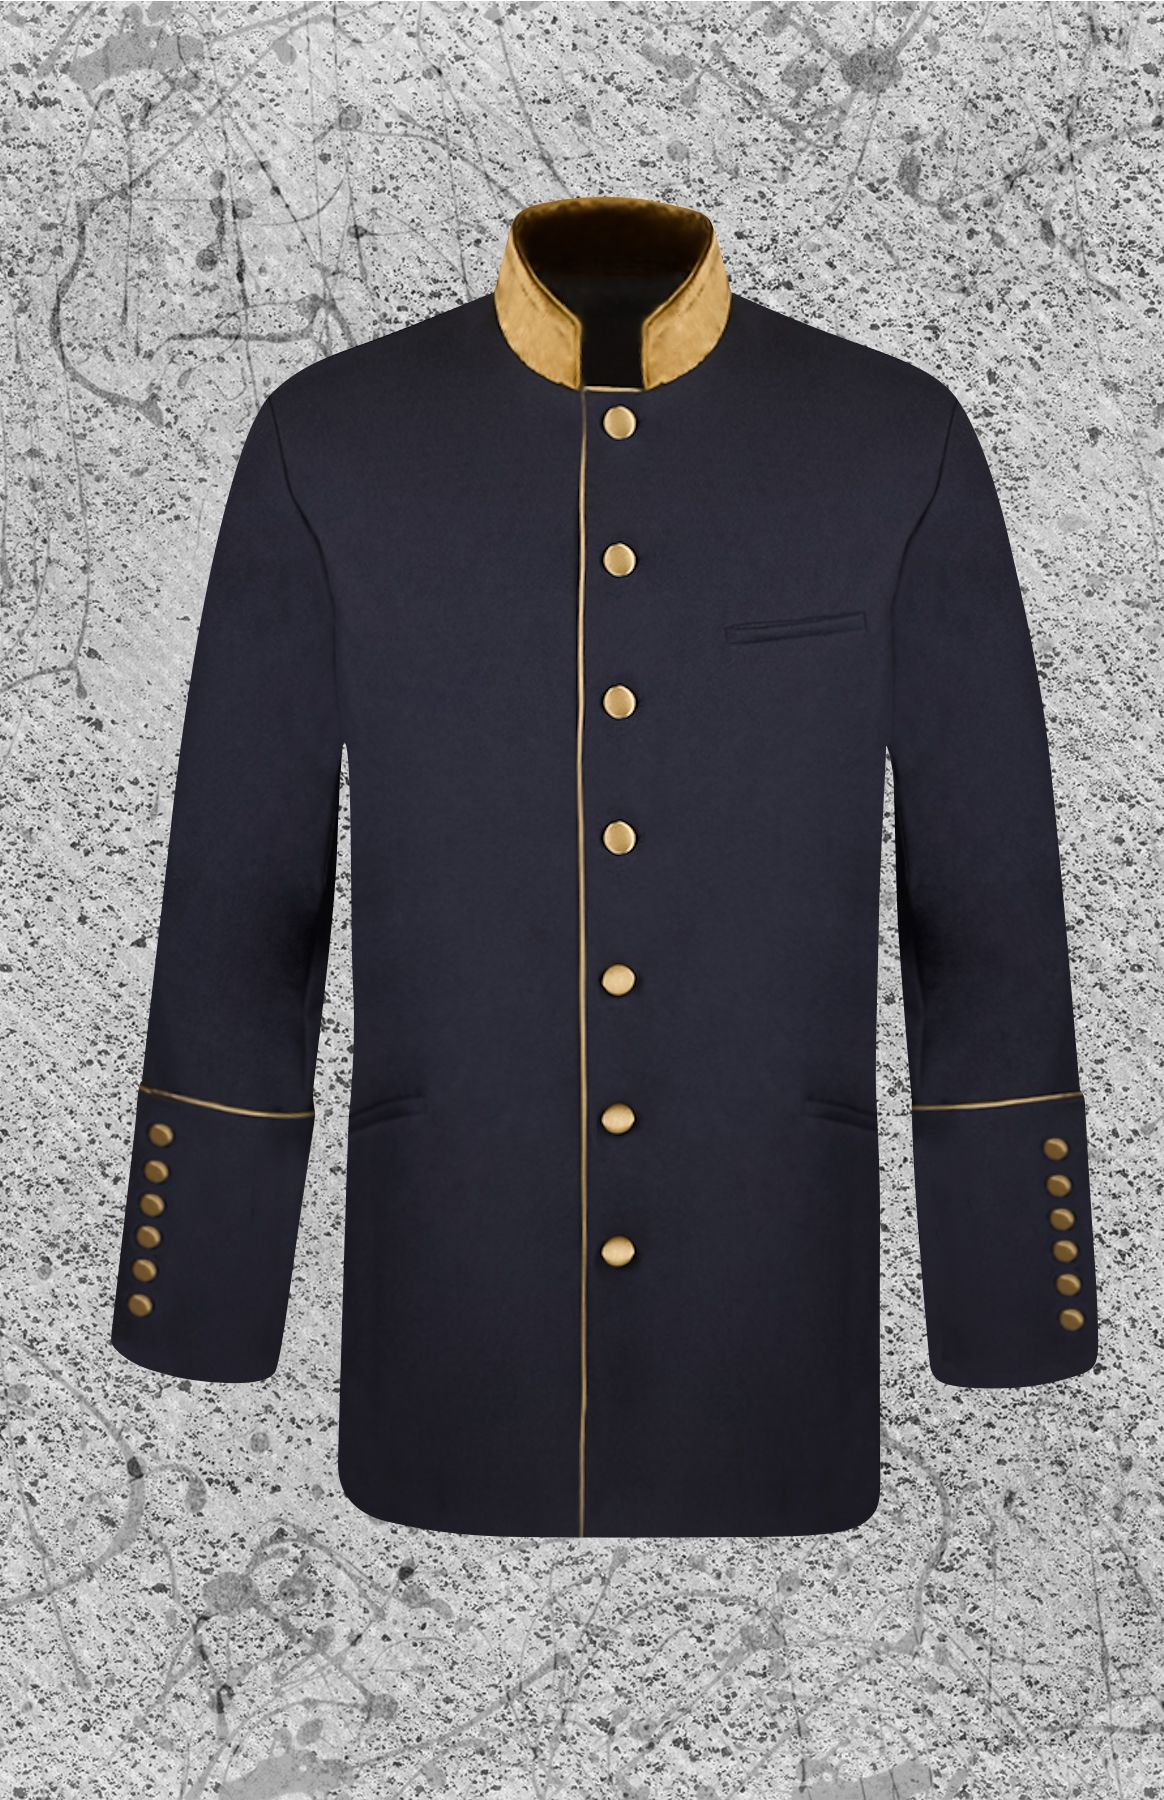 Men's Clergy Frock Jacket Black and Gold